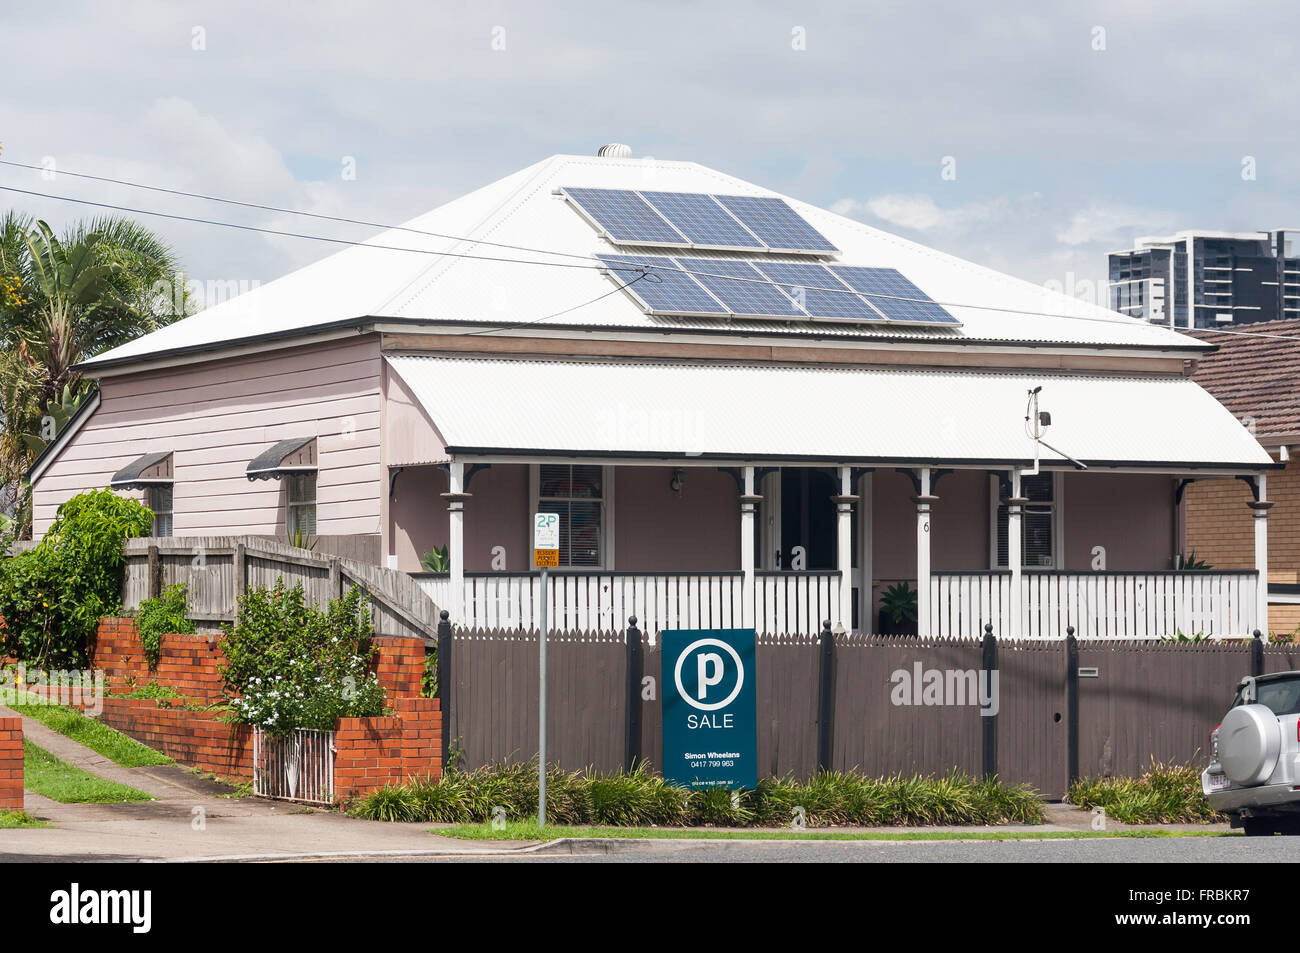 Period wooden home with solar heating panel on roof, Campbell Street, Paddington, Brisbane, Queensland, Australia - Stock Image